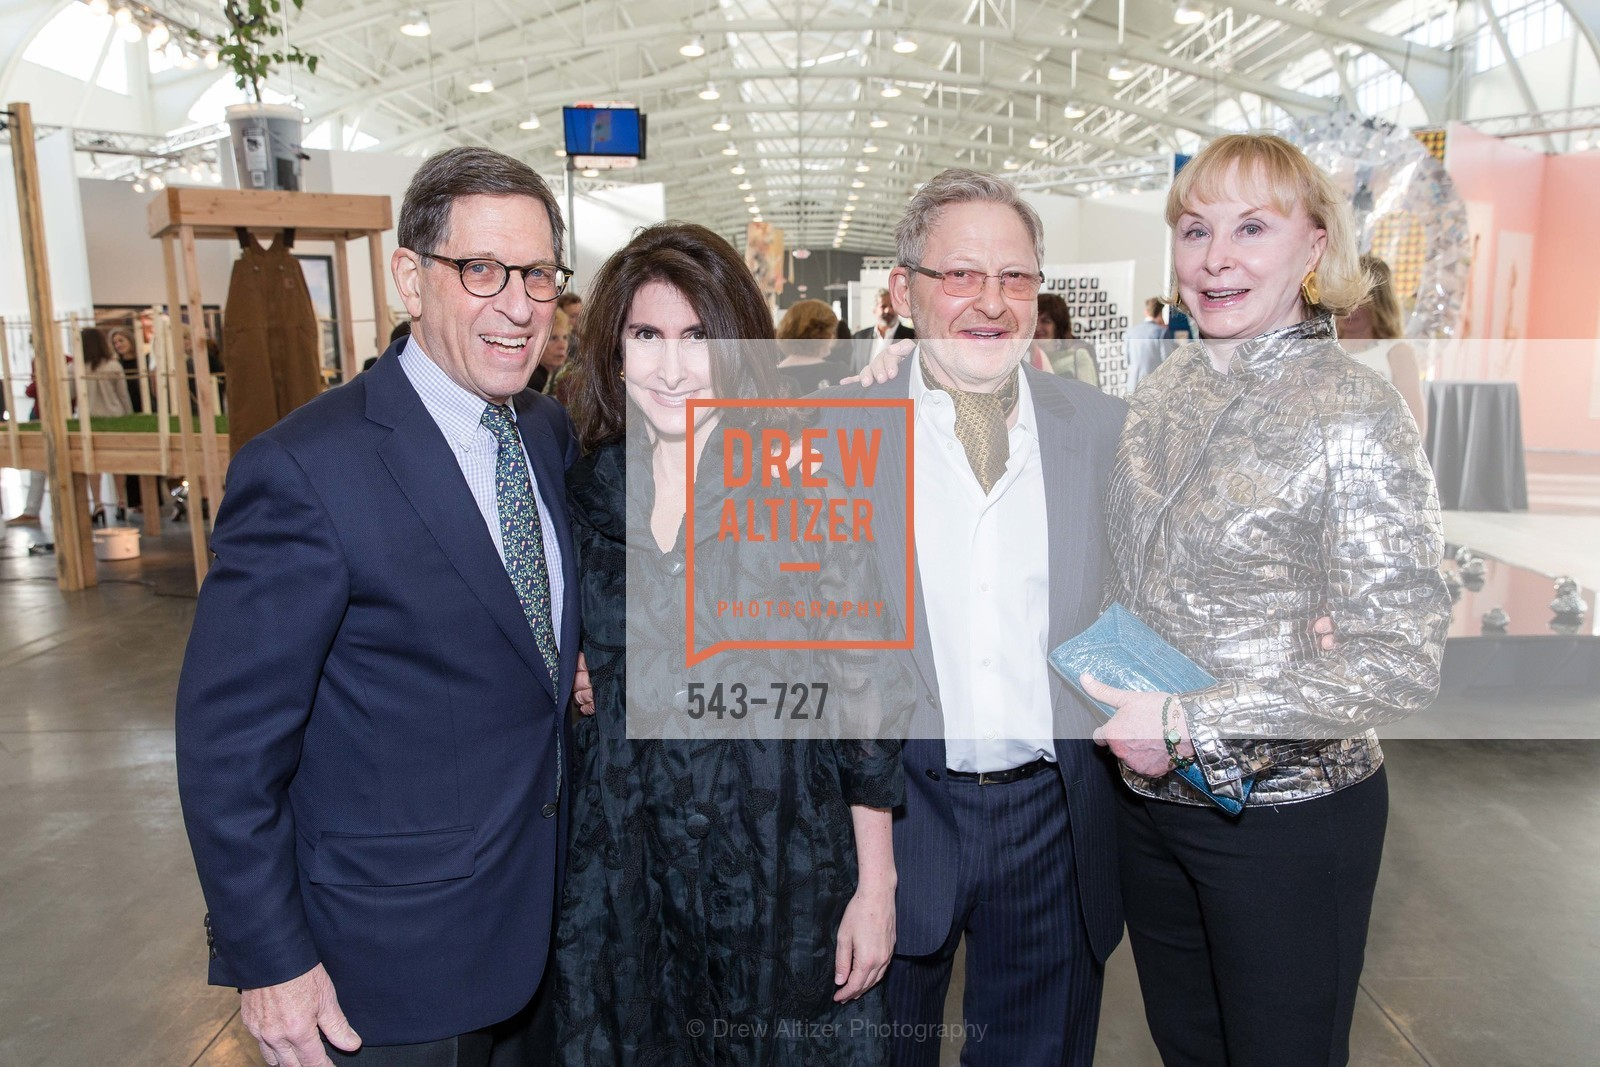 Fred Gans, Leslie Meyerovich, Alex Meyerovich, Shelby Gans, SAN FRANCISCO ART INSTITUTE Gala Honoring Art Visionary and Advocate ROSELYNE CHROMAN SWIG, US, May 14th, 2015,Drew Altizer, Drew Altizer Photography, full-service agency, private events, San Francisco photographer, photographer california